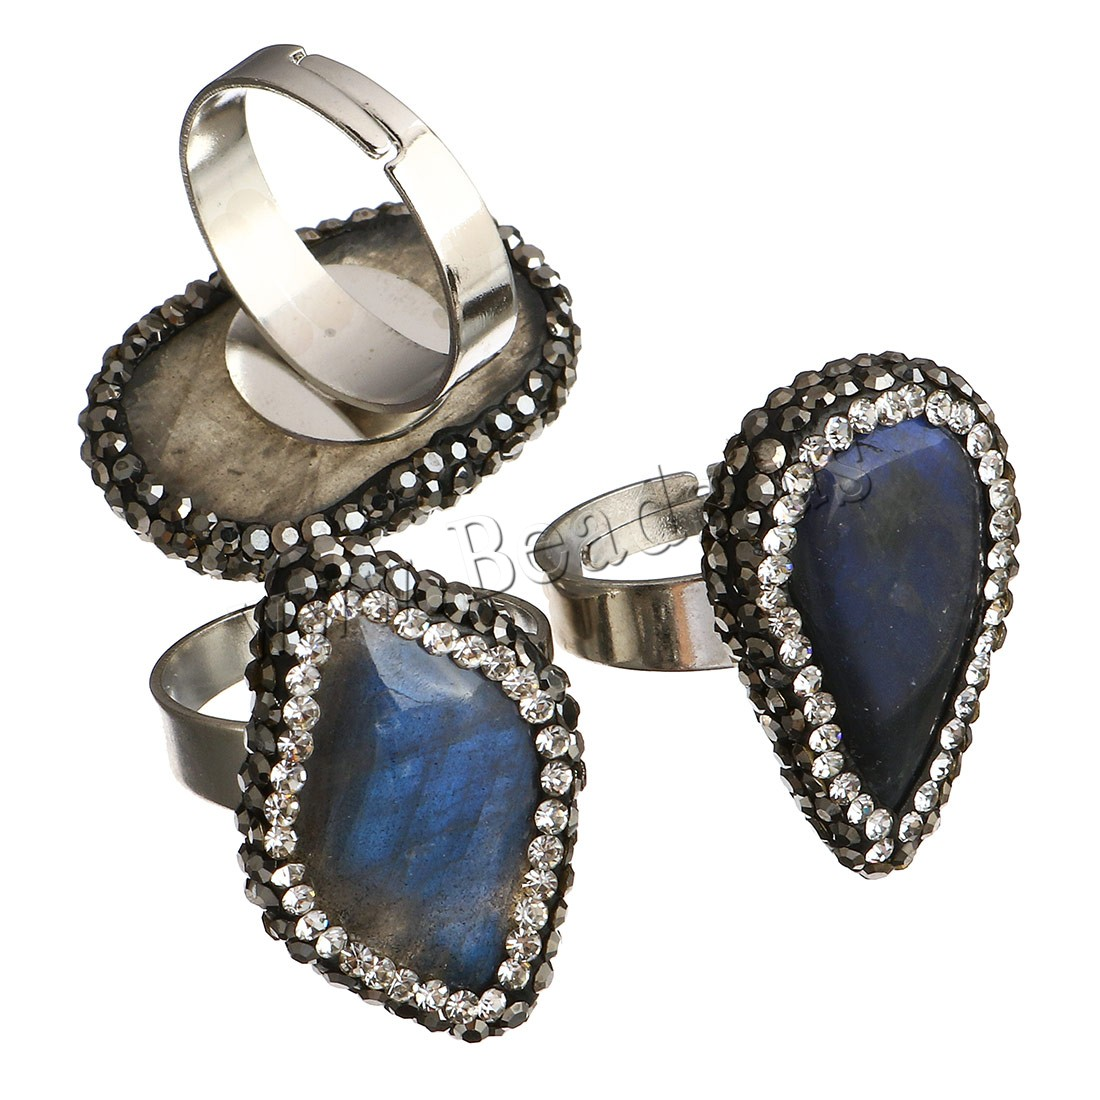 Buy Labradorite Open Finger Ring Brass silver color plated Unisex & mixed 17-19x26-27mm US Ring Size:6 Sold PC